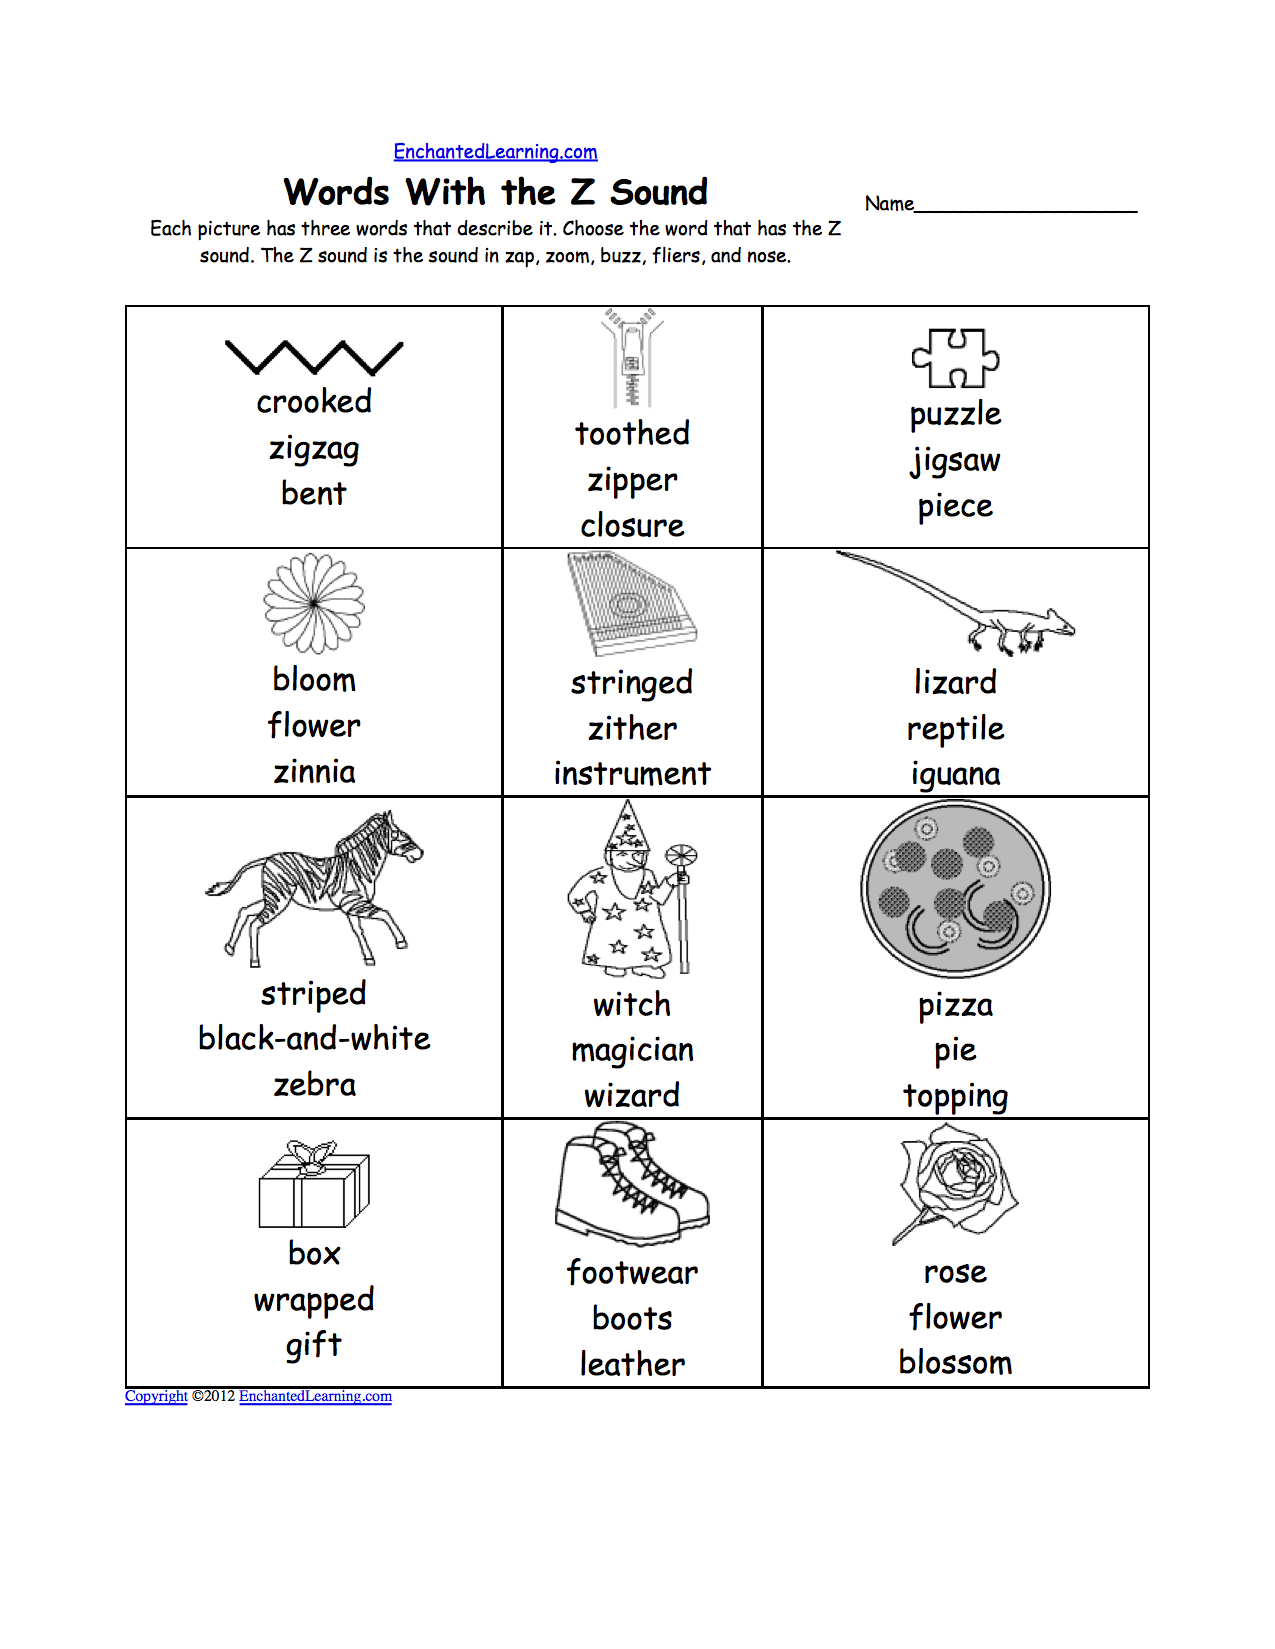 Weirdmailus  Sweet Phonics Worksheets Multiple Choice Worksheets To Print  With Luxury Phonics Worksheets Multiple Choice Worksheets To Print  Enchantedlearningcom With Archaic Blank Times Tables Worksheets Also Whole Number Division Worksheets In Addition Worksheets For Multiplying Decimals And Ks Comprehension Worksheets As Well As Organization Worksheets For Students Additionally Free Letter Worksheets For Kindergarten From Enchantedlearningcom With Weirdmailus  Luxury Phonics Worksheets Multiple Choice Worksheets To Print  With Archaic Phonics Worksheets Multiple Choice Worksheets To Print  Enchantedlearningcom And Sweet Blank Times Tables Worksheets Also Whole Number Division Worksheets In Addition Worksheets For Multiplying Decimals From Enchantedlearningcom